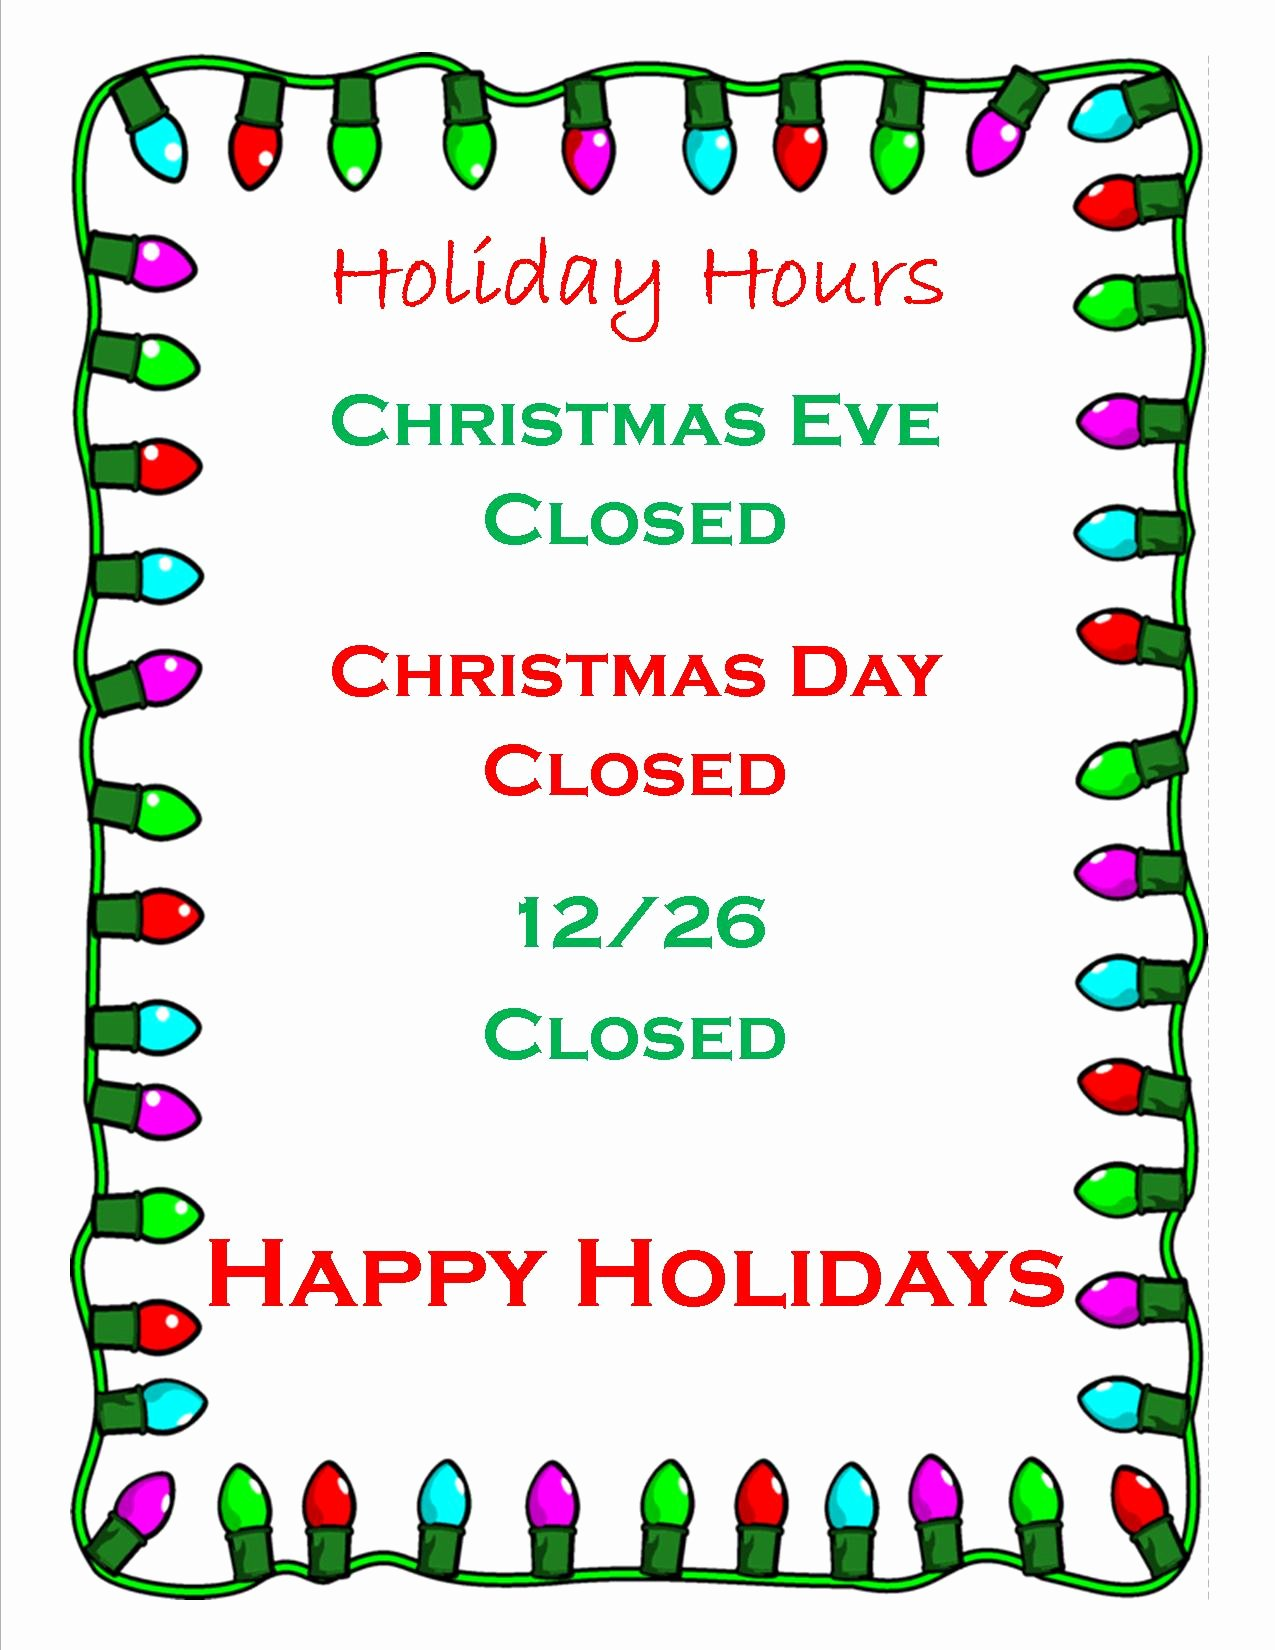 Holiday Hours Sign Template Fresh Business Fice Closed for Holidays Keizer Fire District